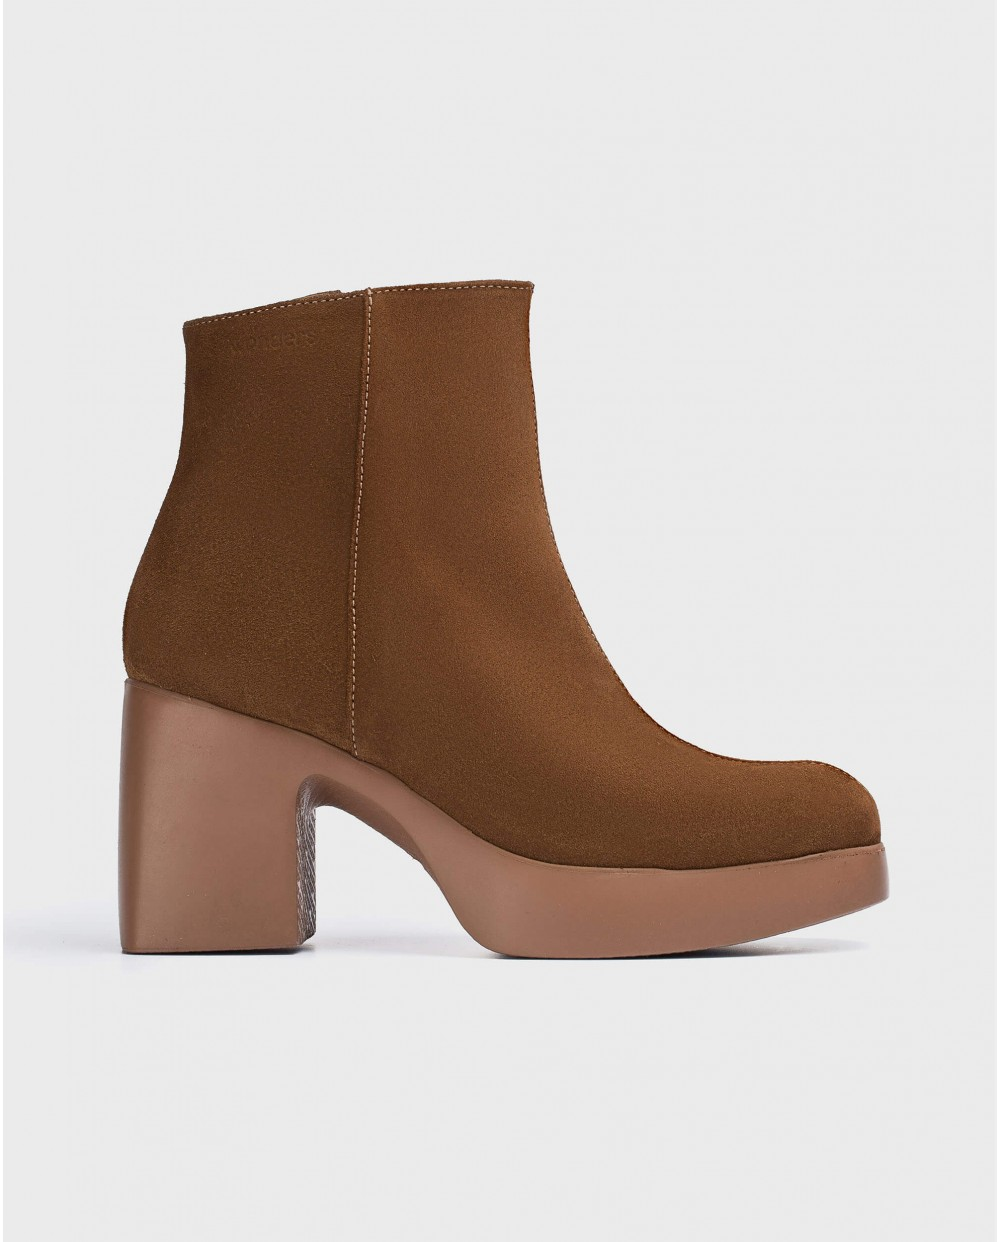 Wonders-Ankle Boots-Brown Mex Ankle Boot